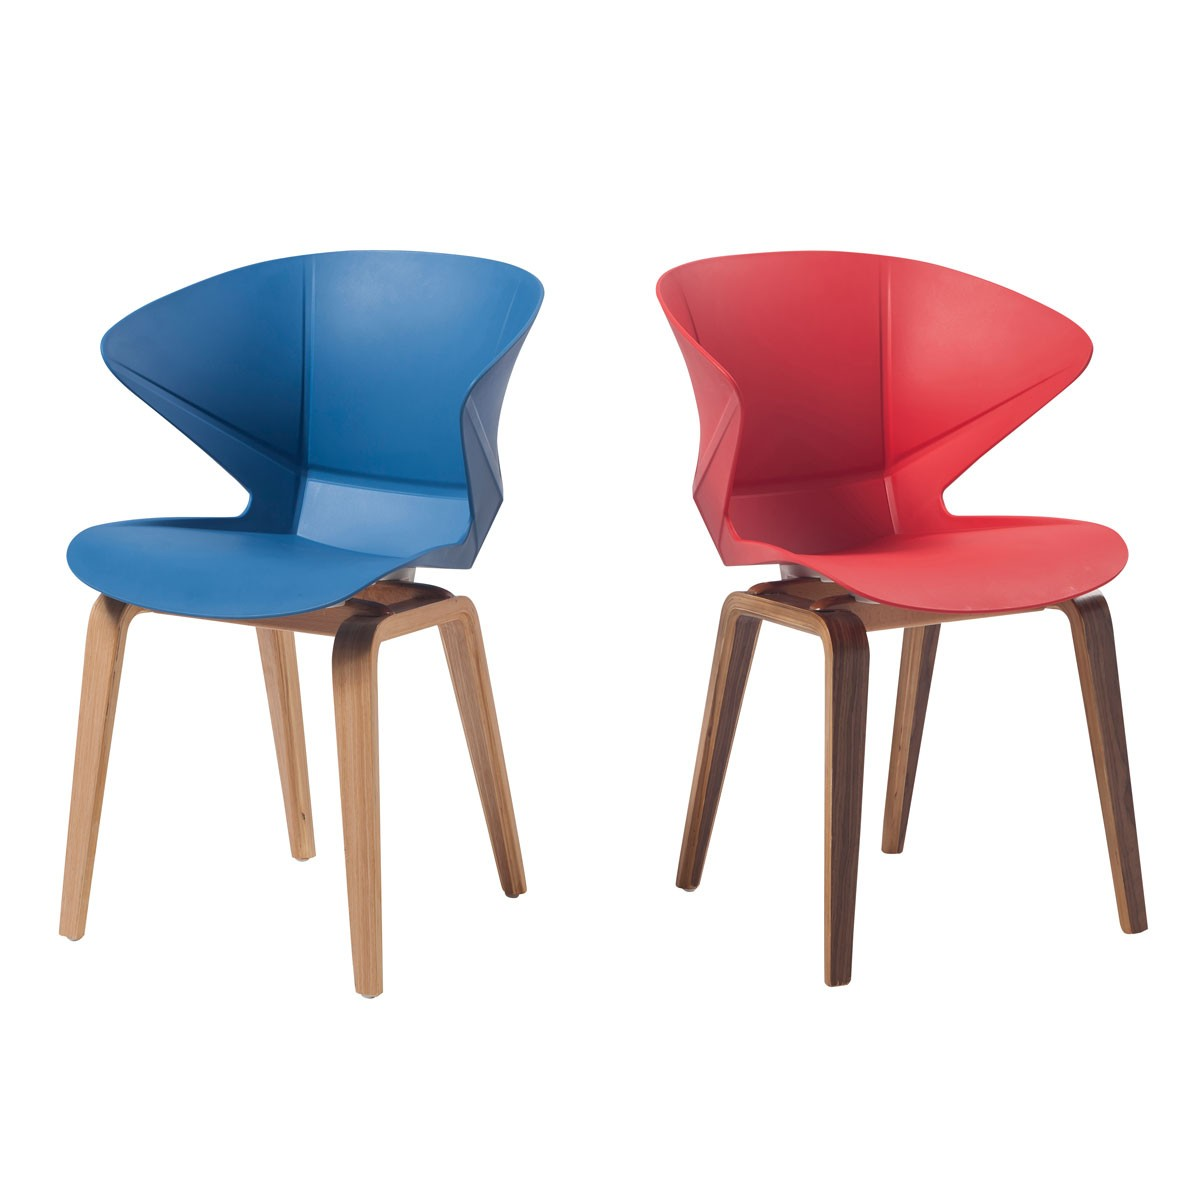 Molded Plastic Chair in Red with Wood Legs - (YMG-9302B-1)